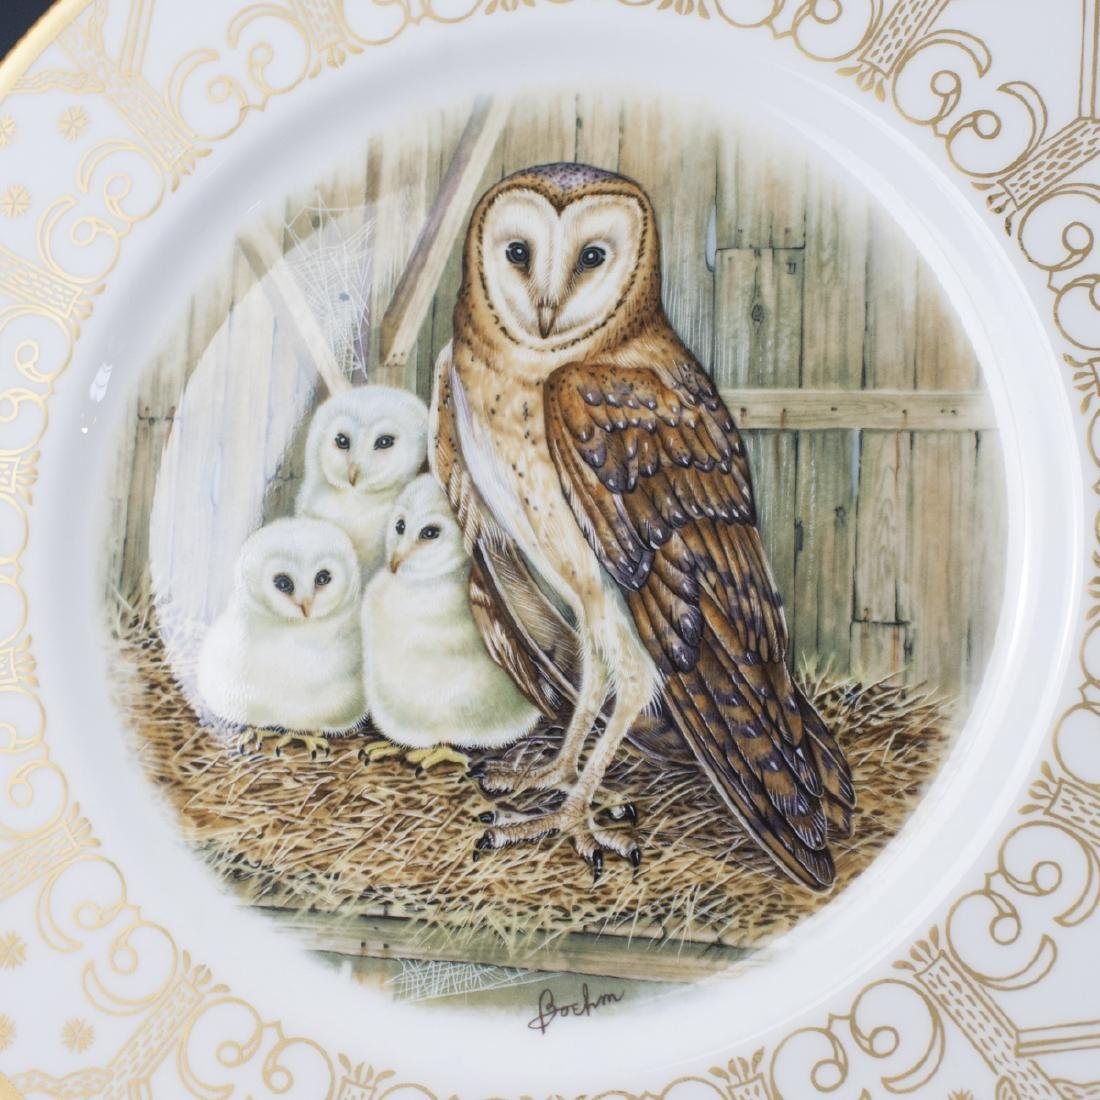 Edward Marshall Boehm Owl Plate Collection - 6